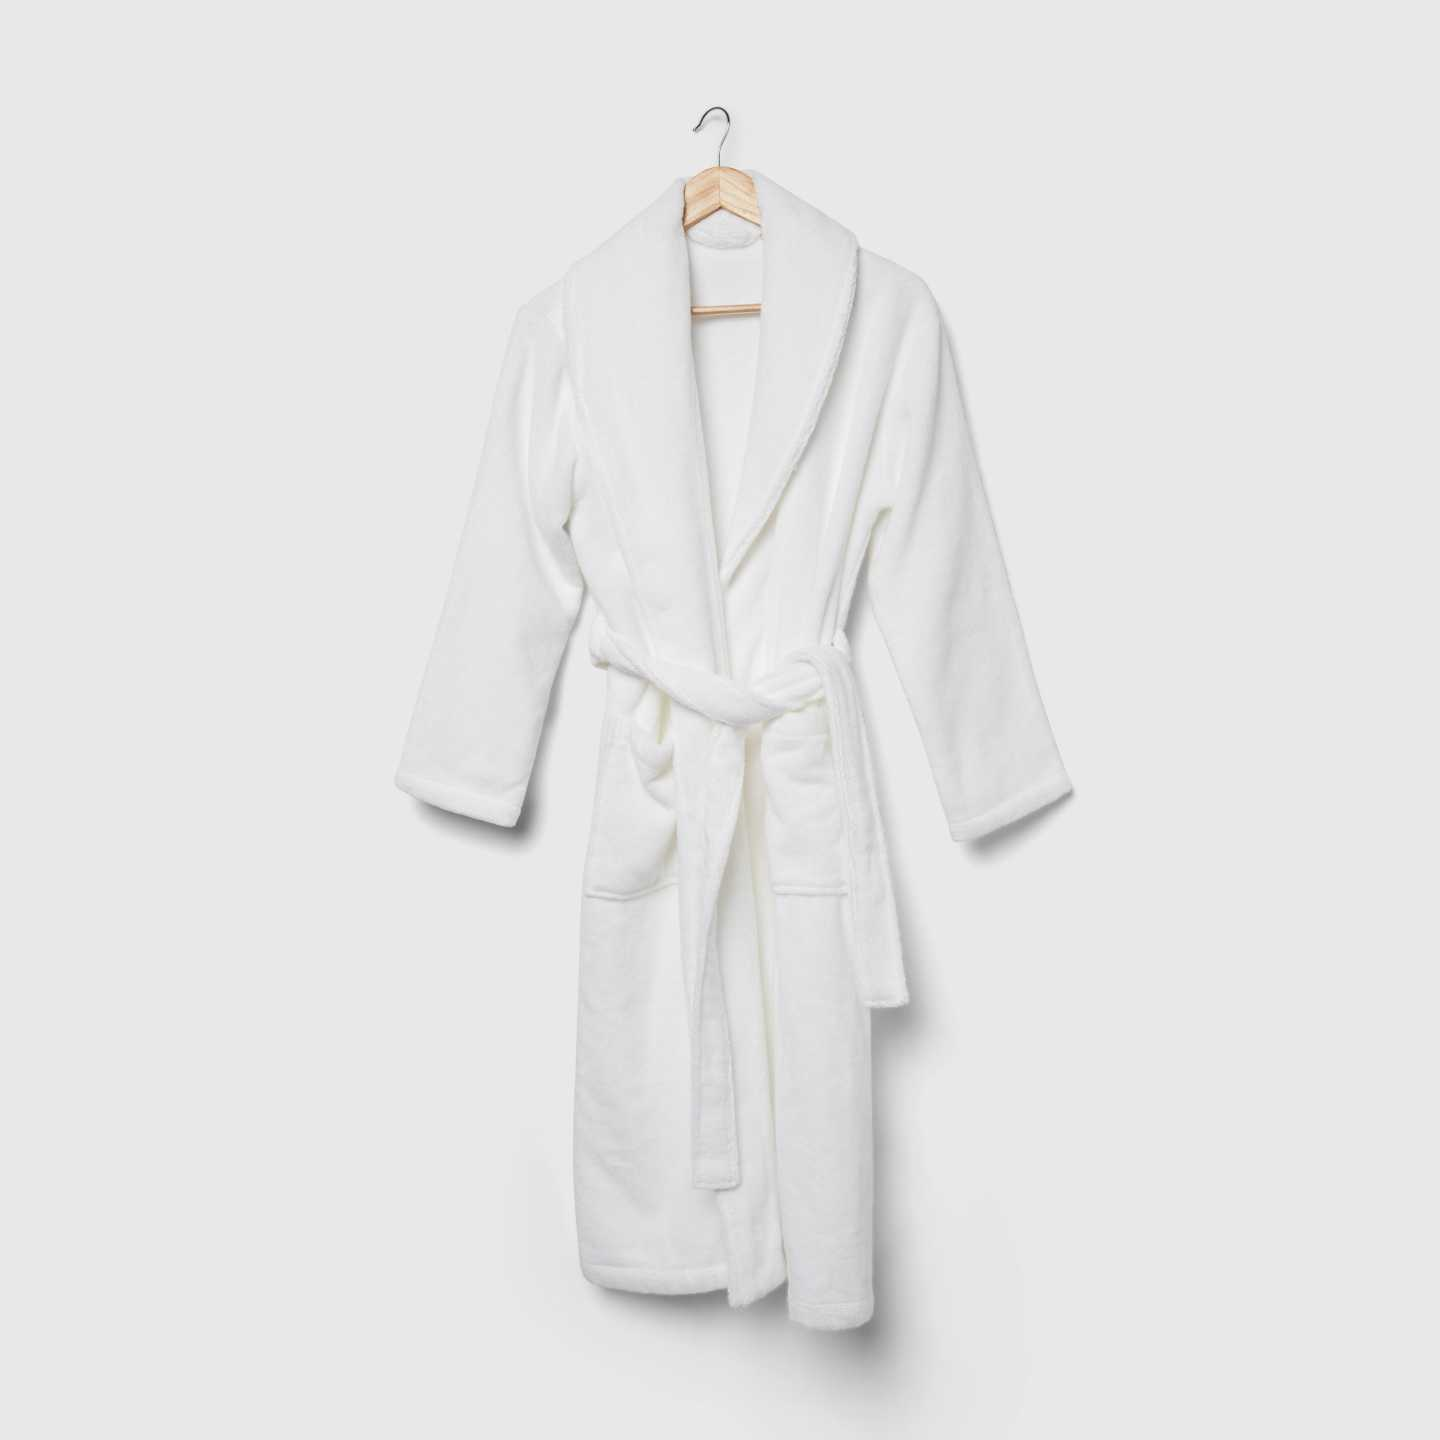 Organic Luxe Turkish Cotton Bath Robe - undefined - 0 - Thumbnail